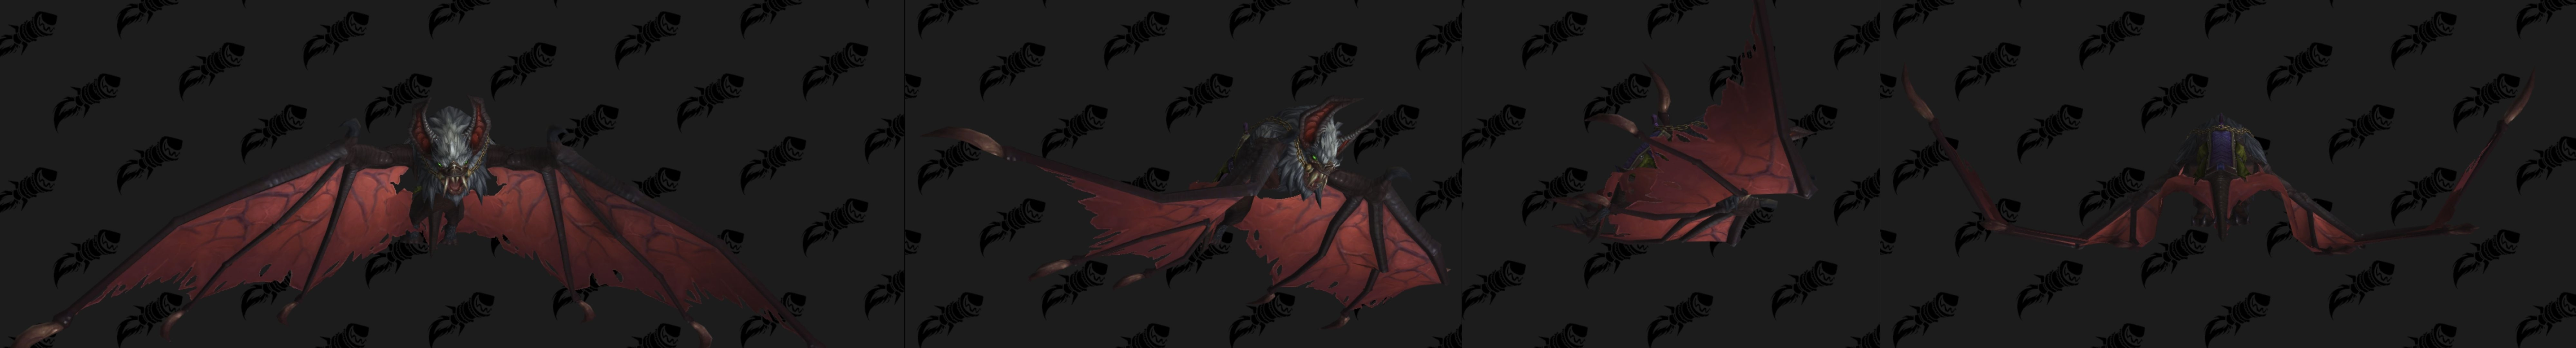 WoW Warfront Bat